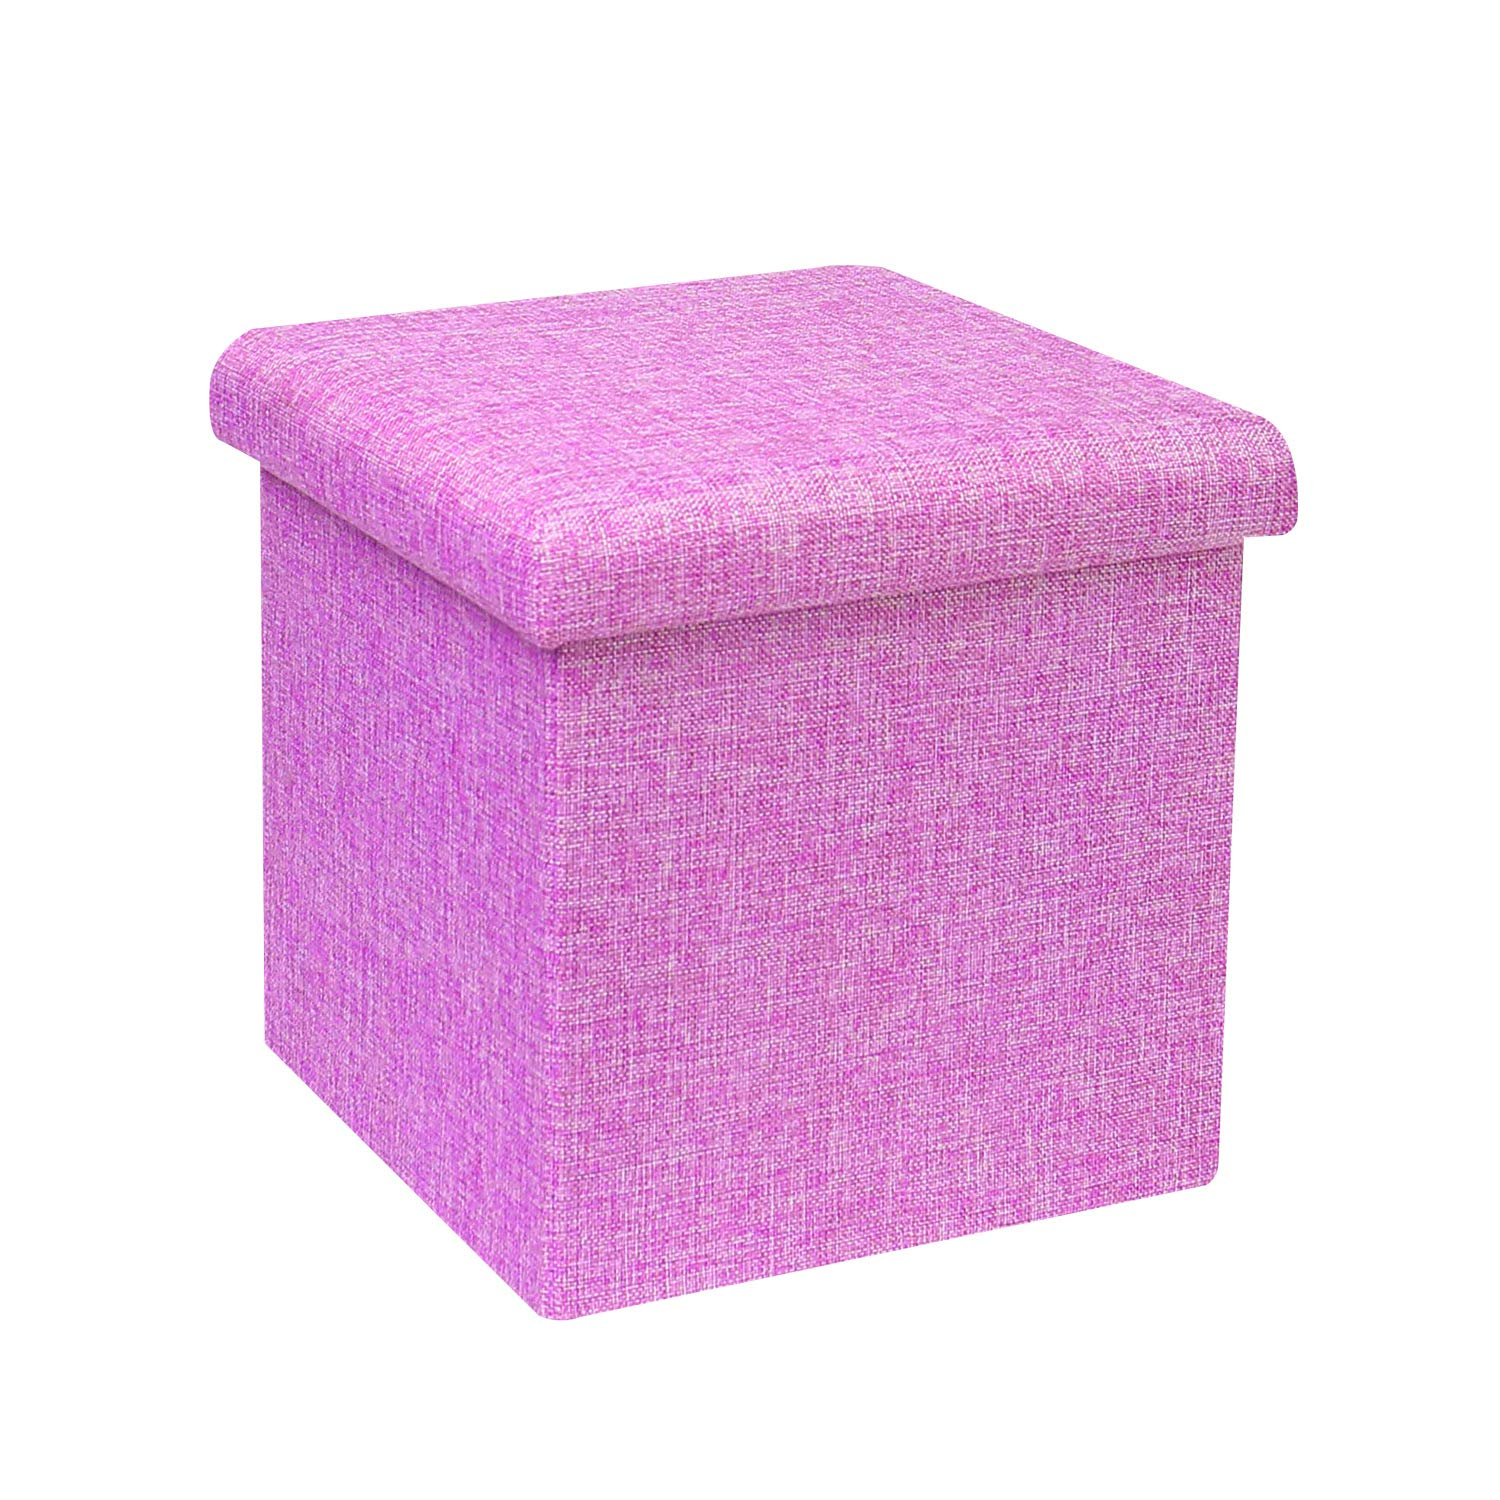 """B FSOBEIIALEO Storage Ottoman Cube, Linen Small Coffee Table, Foot Rest Stool Seat, Folding Toys Chest Collapsible for Kids Purple 11.8""""x11.8""""x11.8"""""""